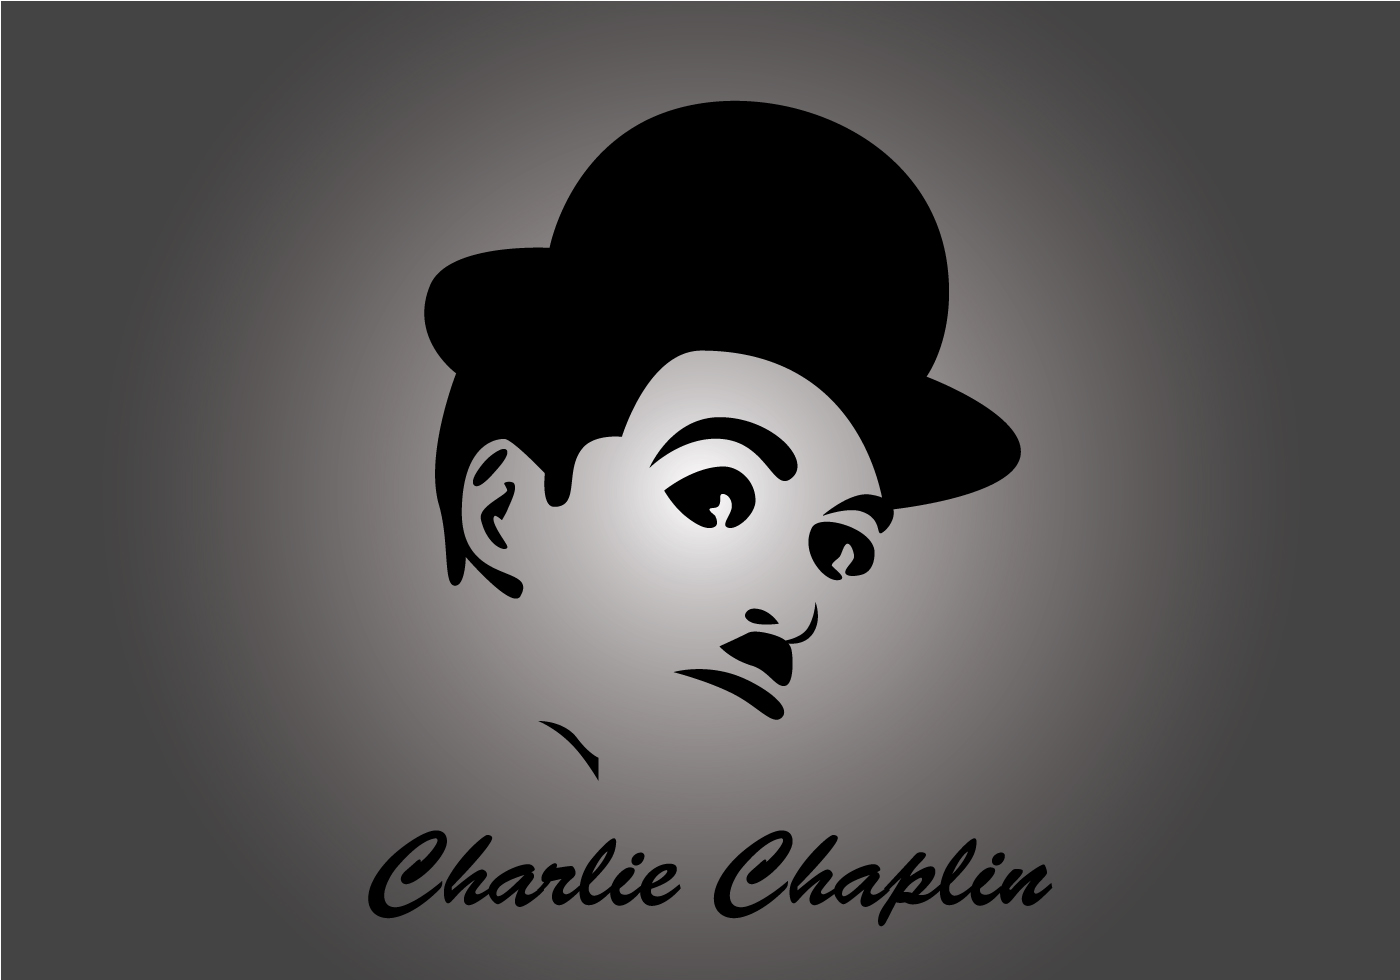 charlie chaplin download free vector art stock graphics. Black Bedroom Furniture Sets. Home Design Ideas